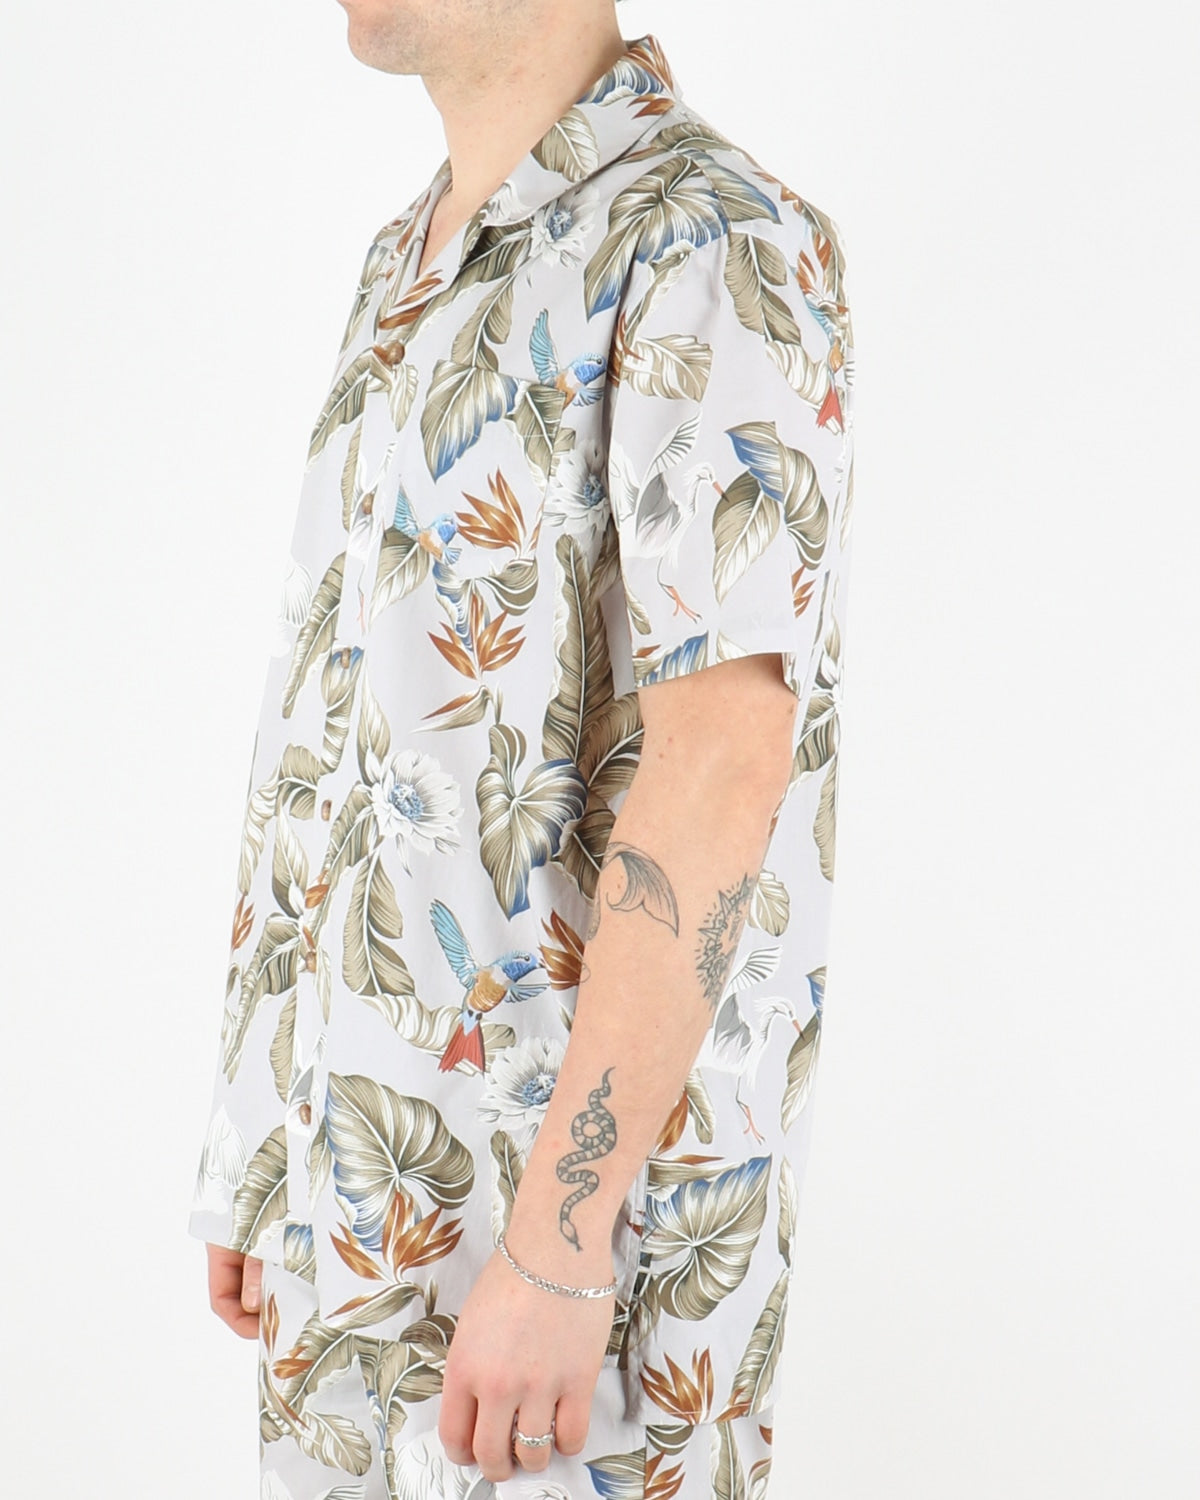 libertine libertine_cave shirt_dusty flower_2_4